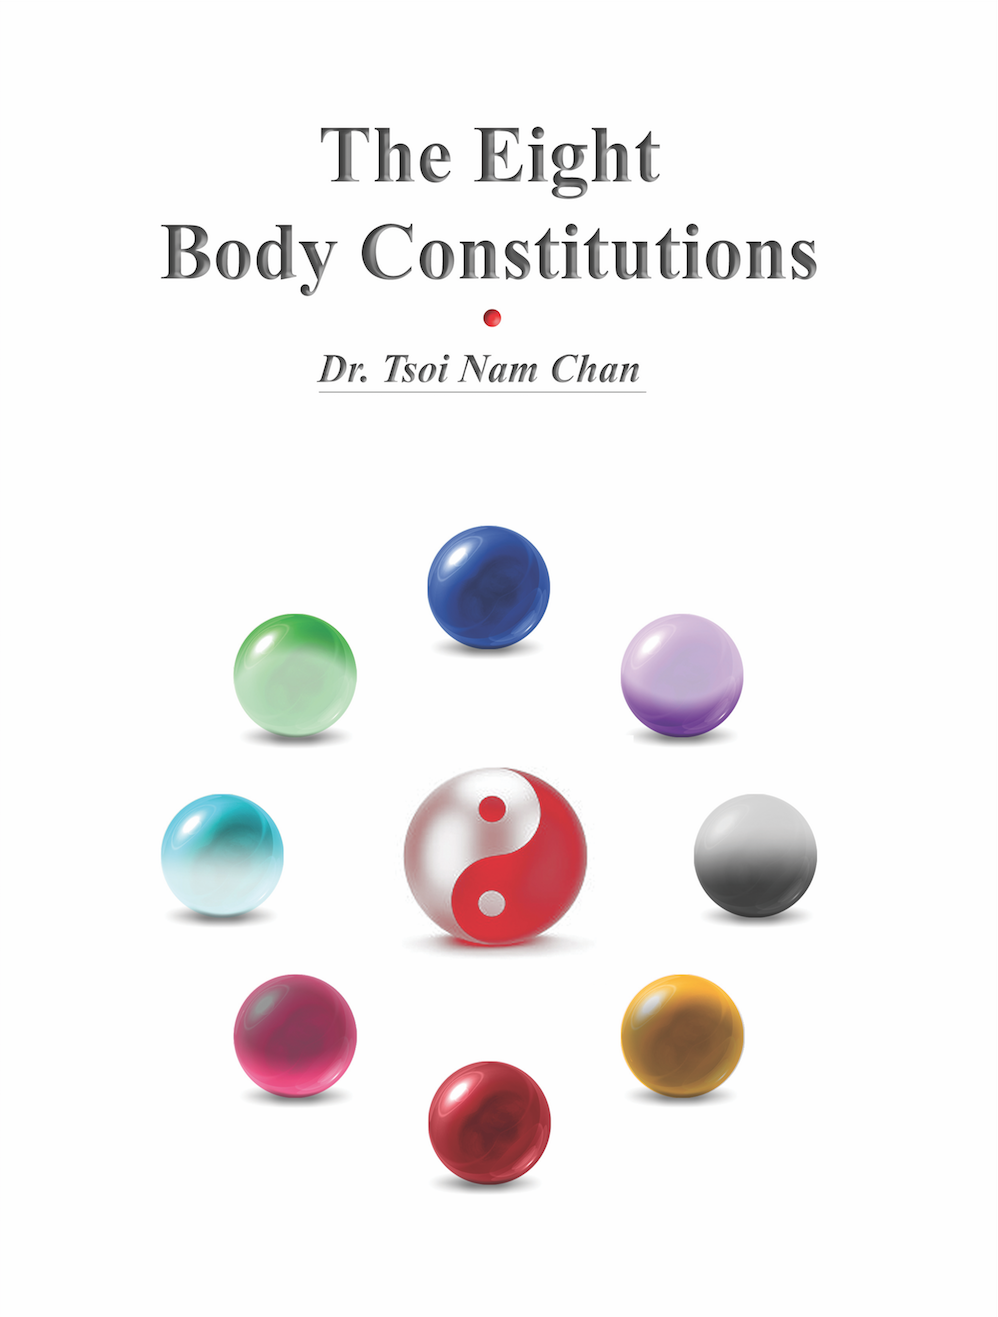 The Eight Body Constitutions